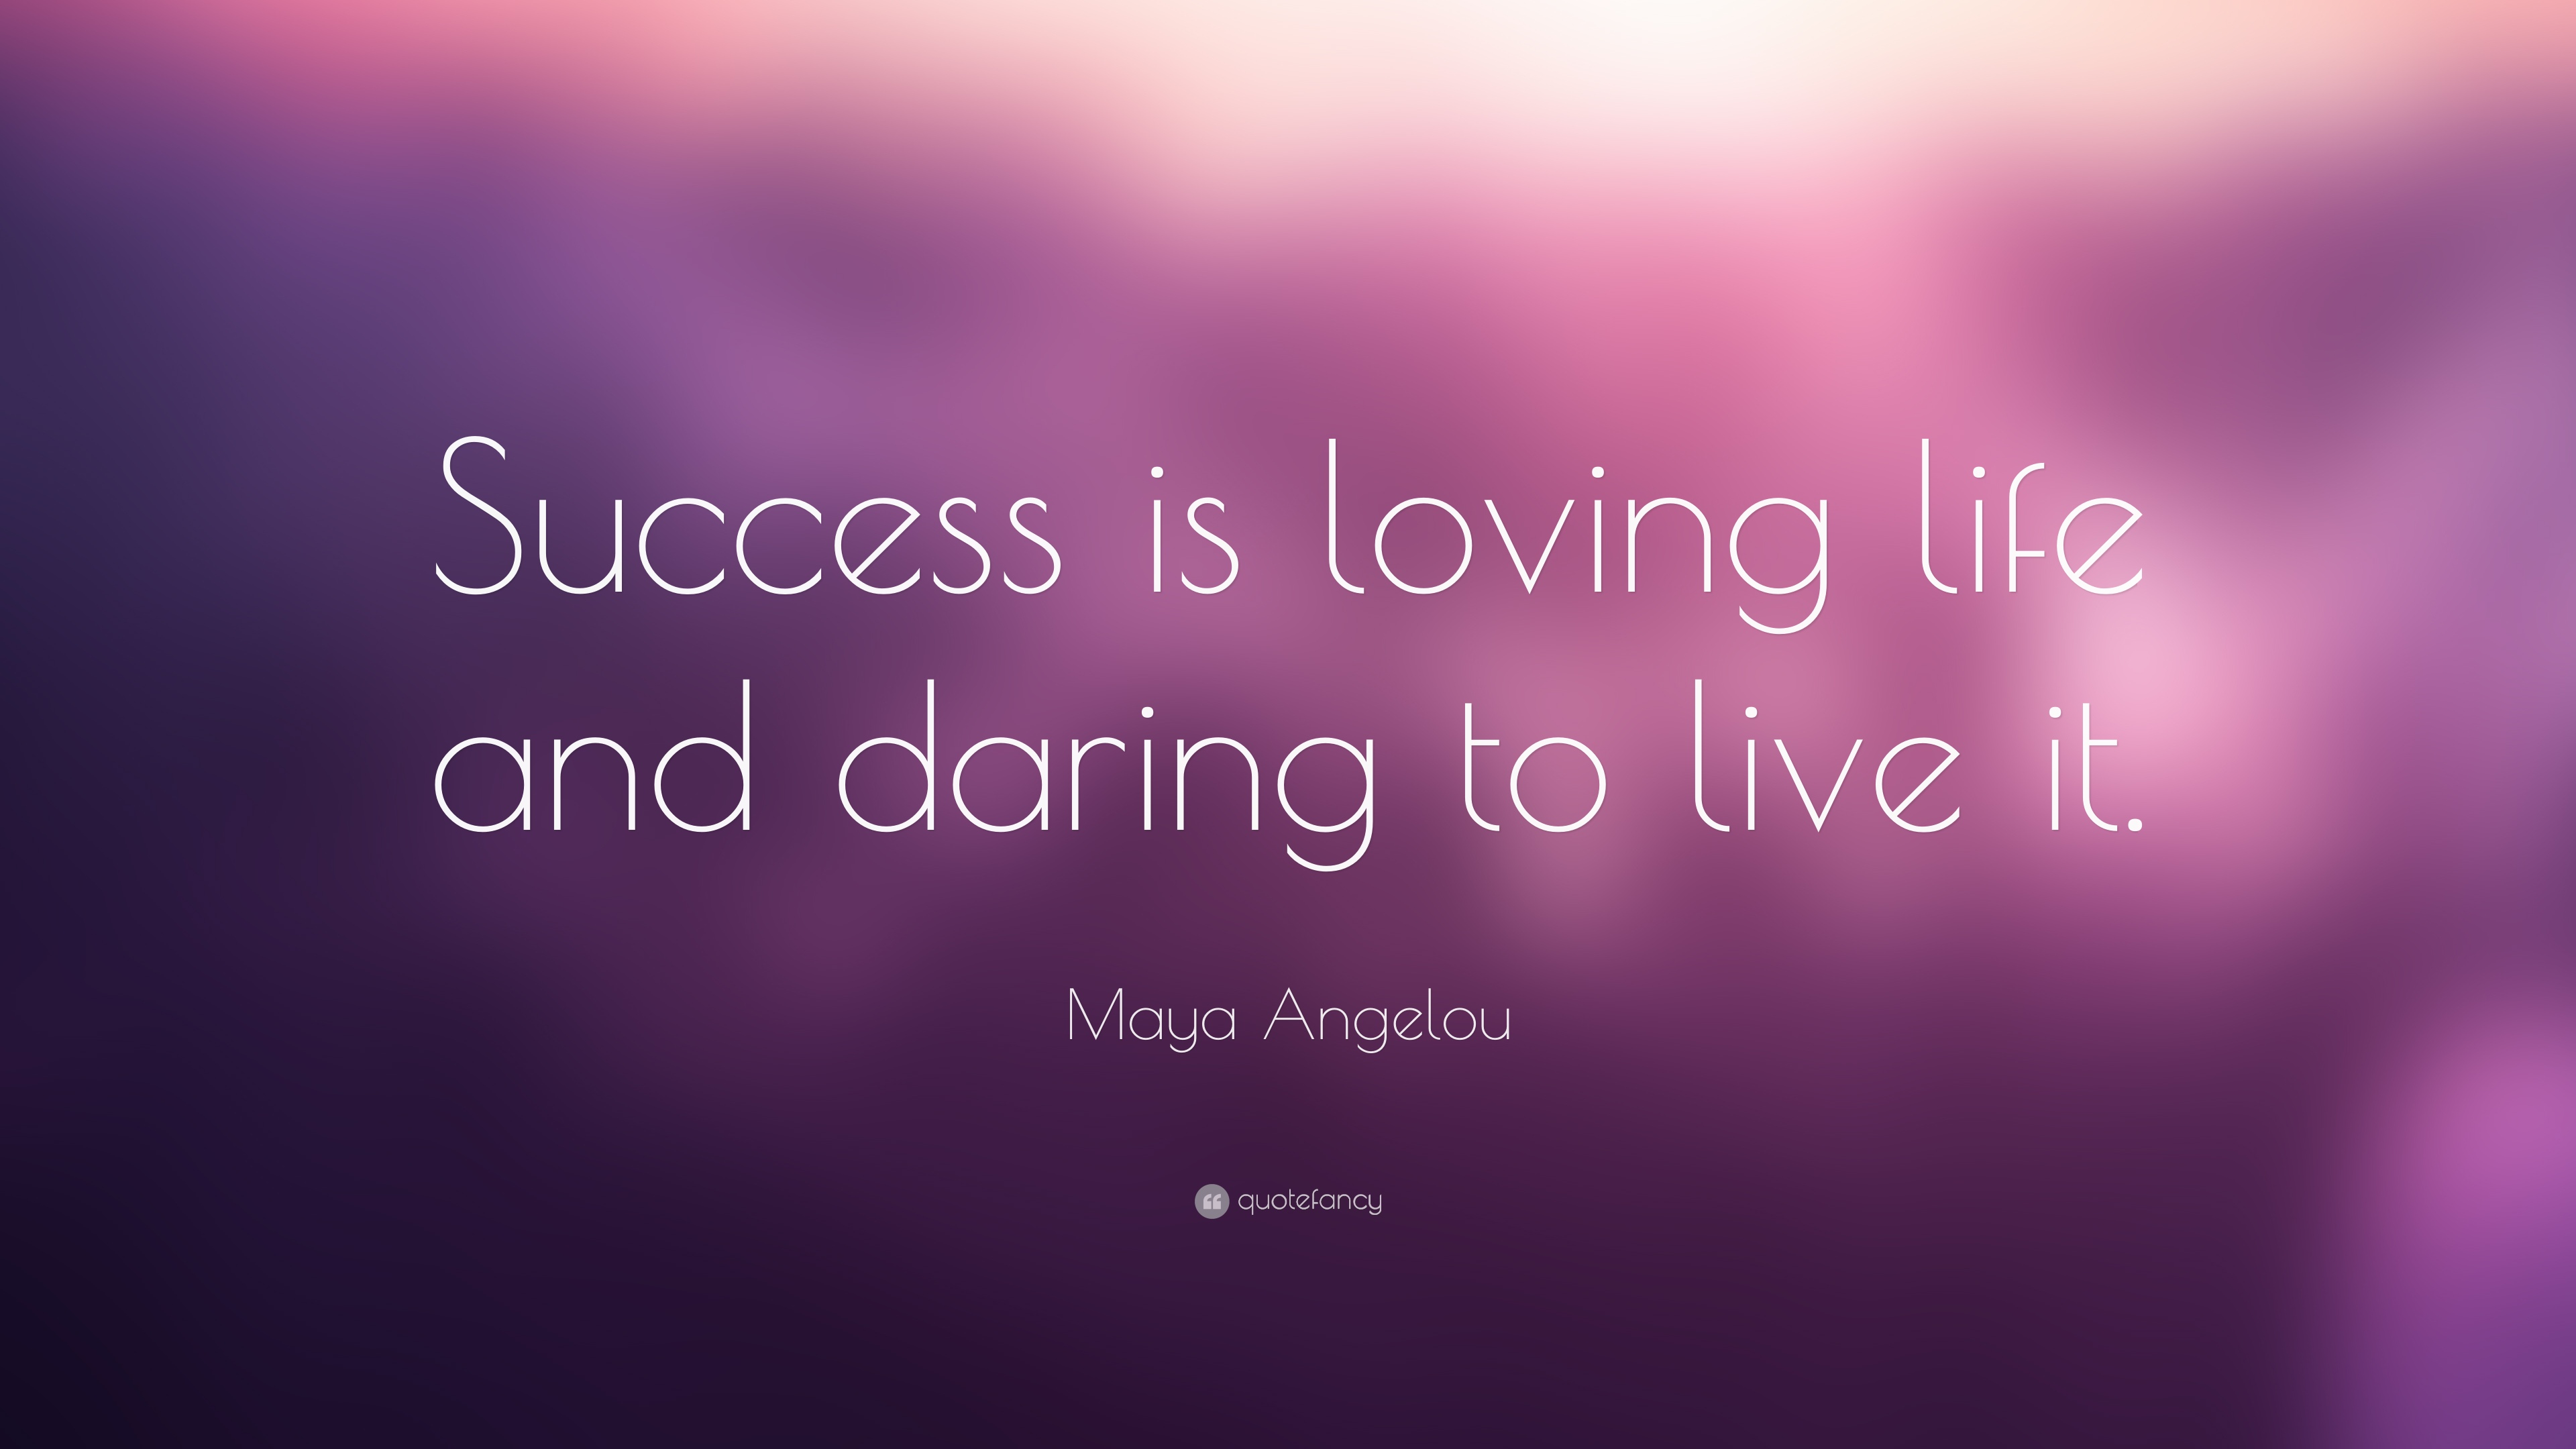 """Maya Angelou Quotes On Love And Relationships Maya Angelou Quote """"Success Is Loving Life And Daring To Live It"""